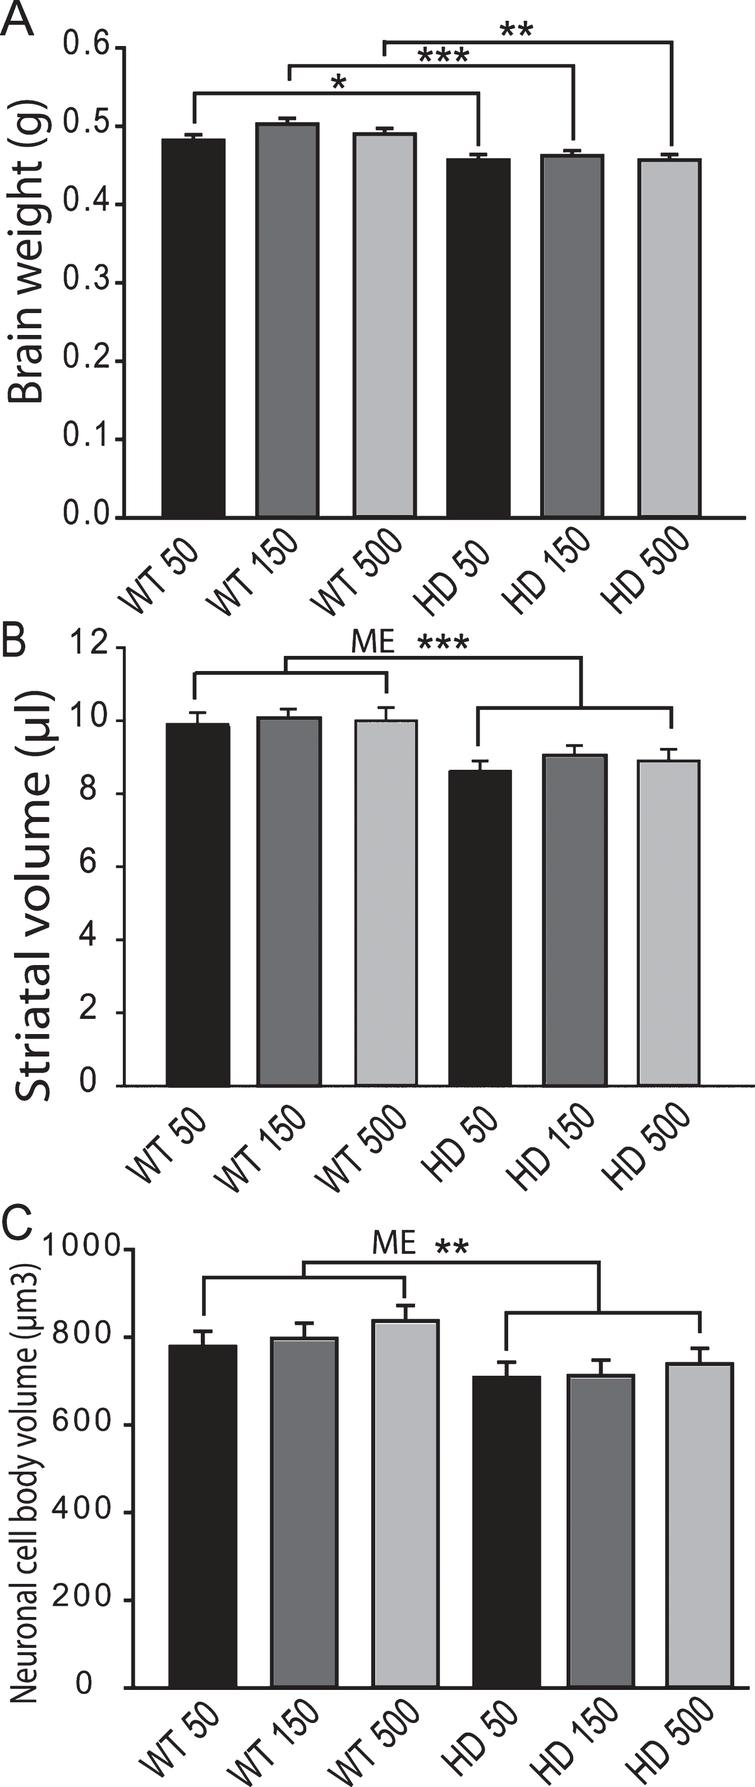 Adult iron supplementation does not exacerbate neurodegeneration markers in YAC128 HD mice. Mice were maintained on diets from 2–12 months of age. A. Brain weights of YAC128 HD and wild-type mice fed one of three custom iron diets. YAC128 mice have significantly decreased brain weights compared to wild-type litter-mates. Iron supplementation has no effect on brain weight in HD or wild-type mice. n=12–15, B. Striatal volumes are decreased by HD but not by dietary iron level. There was a significant effect of genotype with YAC128 HD mice having lower striatal volumes across all iron groups, n=4–6, C. Striatal cell body volumes are not altered by dietary iron intake level in YAC128 HD or wild-type mice. There was a significant effect of genotype with YAC128 HD mice having lower cell volumes across all iron groups. ME=main effect comparison. P-values: *p<0.05, **p<0.01, ***p<0.001, n=4–6.